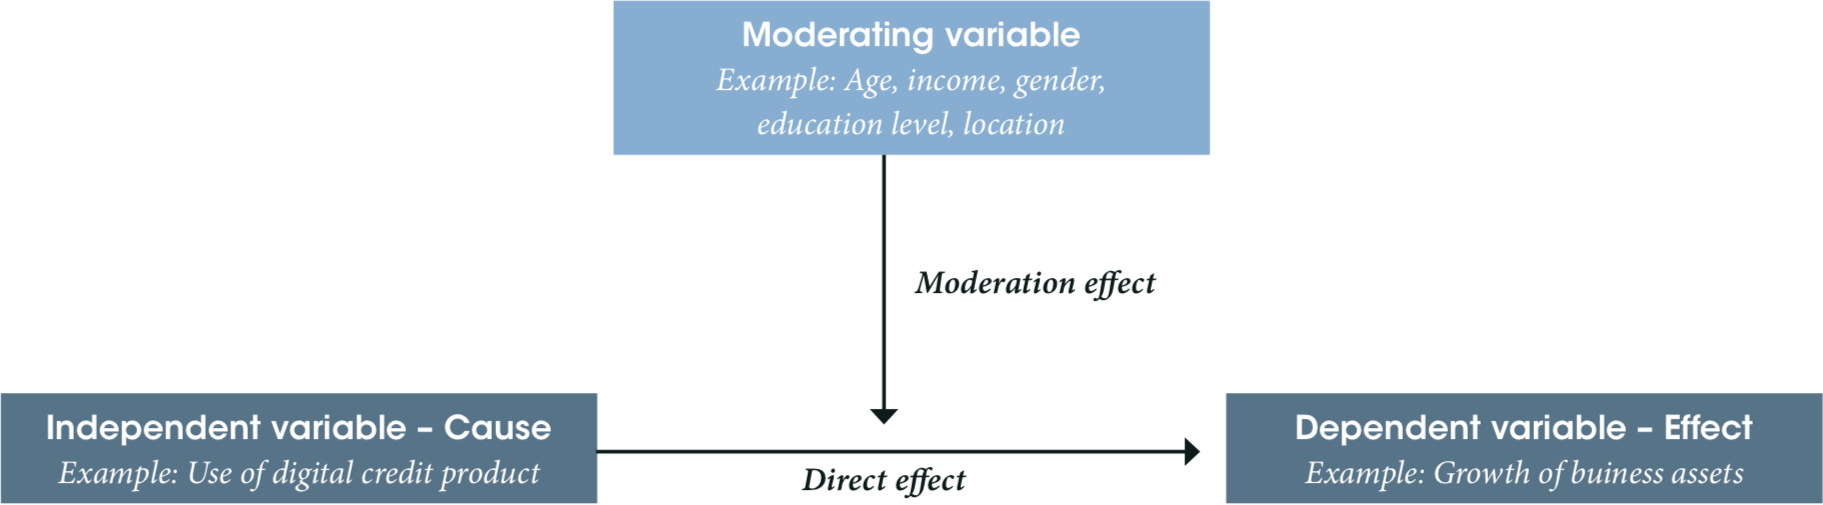 Moderation effects